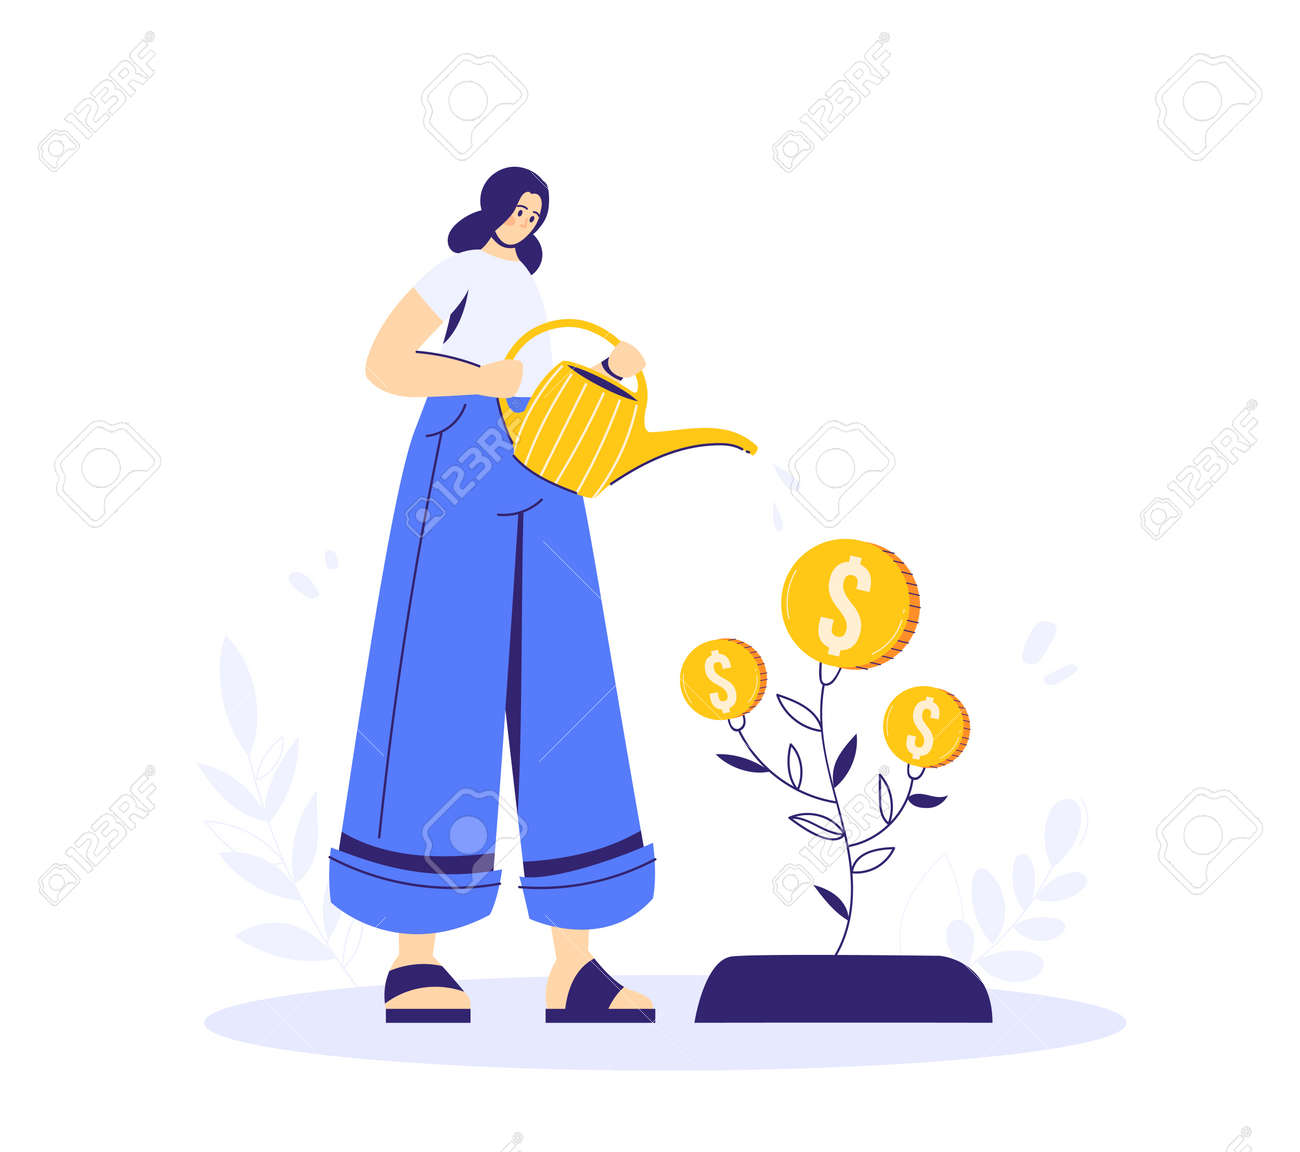 Growing tree with coins, caring for a tree, woman watering the plant. Growing business concept. A symbol of successful business. - 170358972